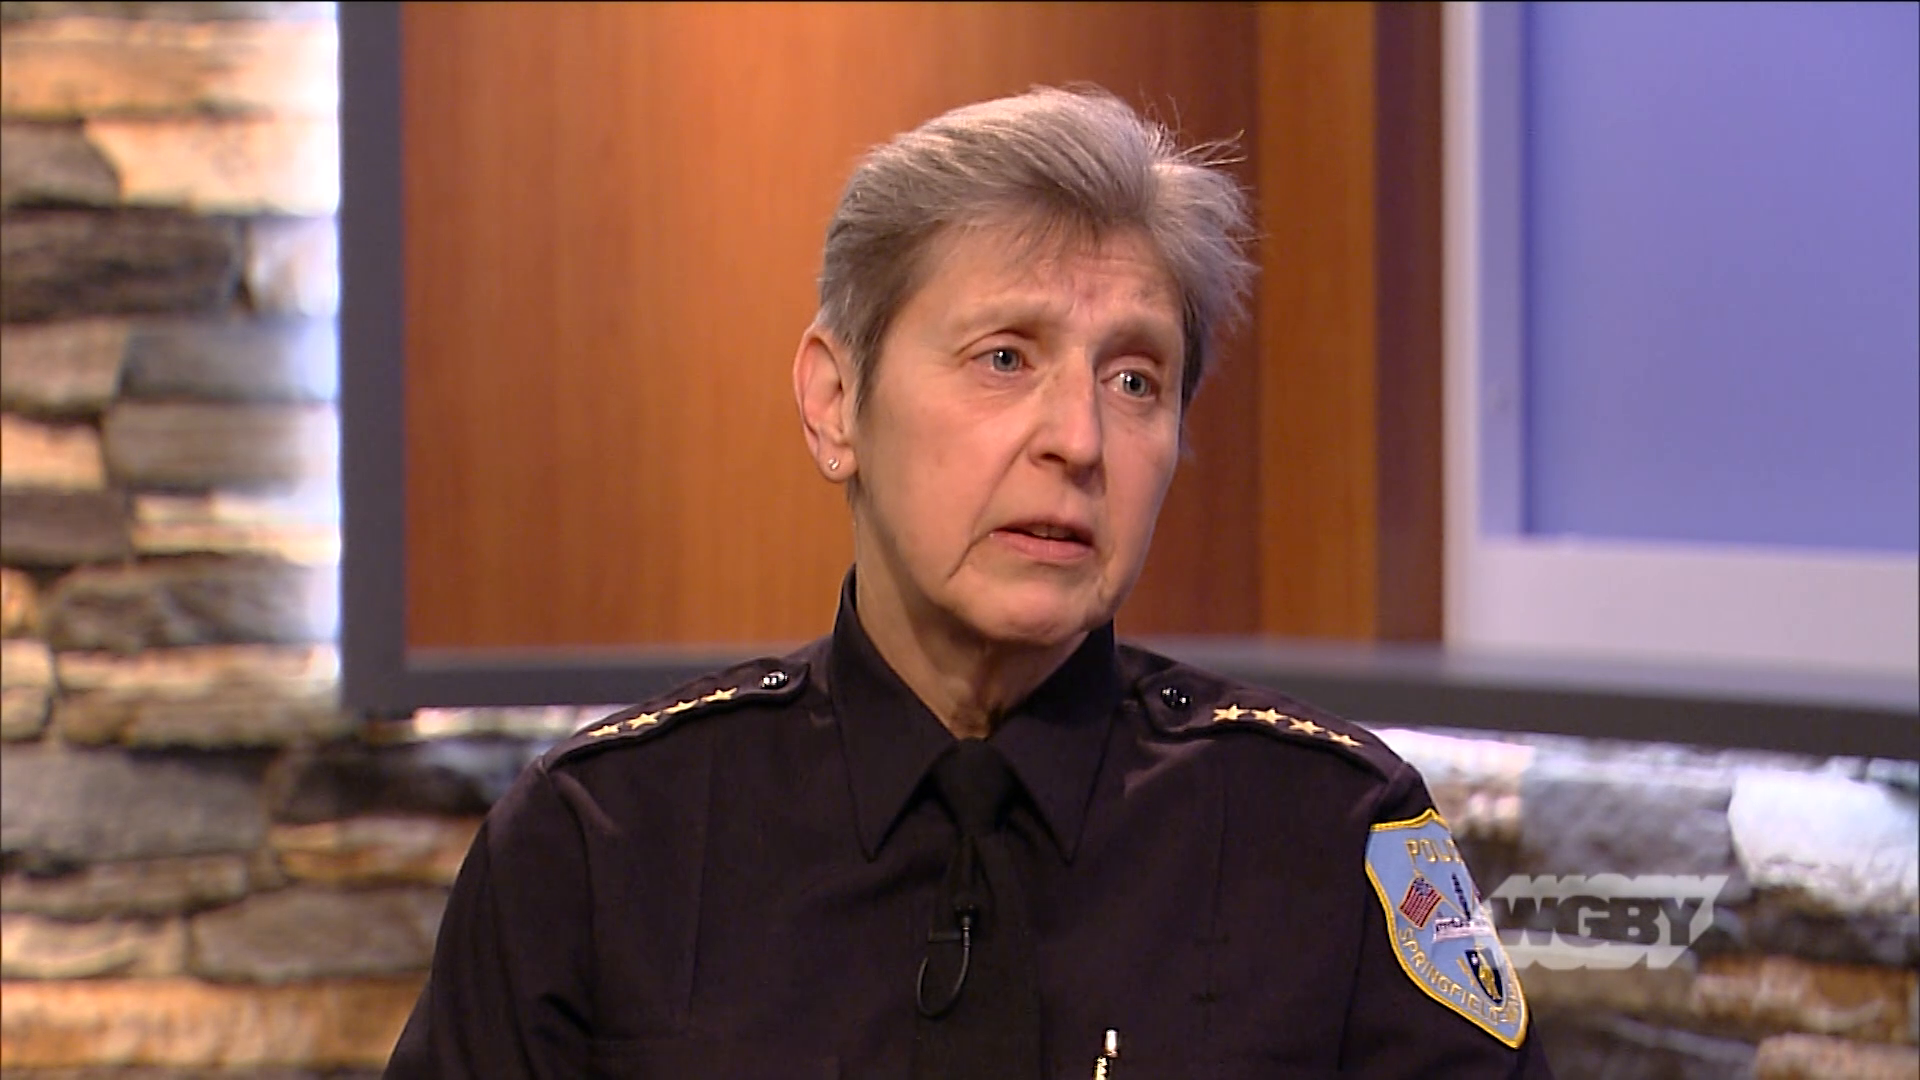 Interim Springfield Police Commissioner Cheryl Clapprood discusses the department, her career, and her vision for the future of the Springfield PD.